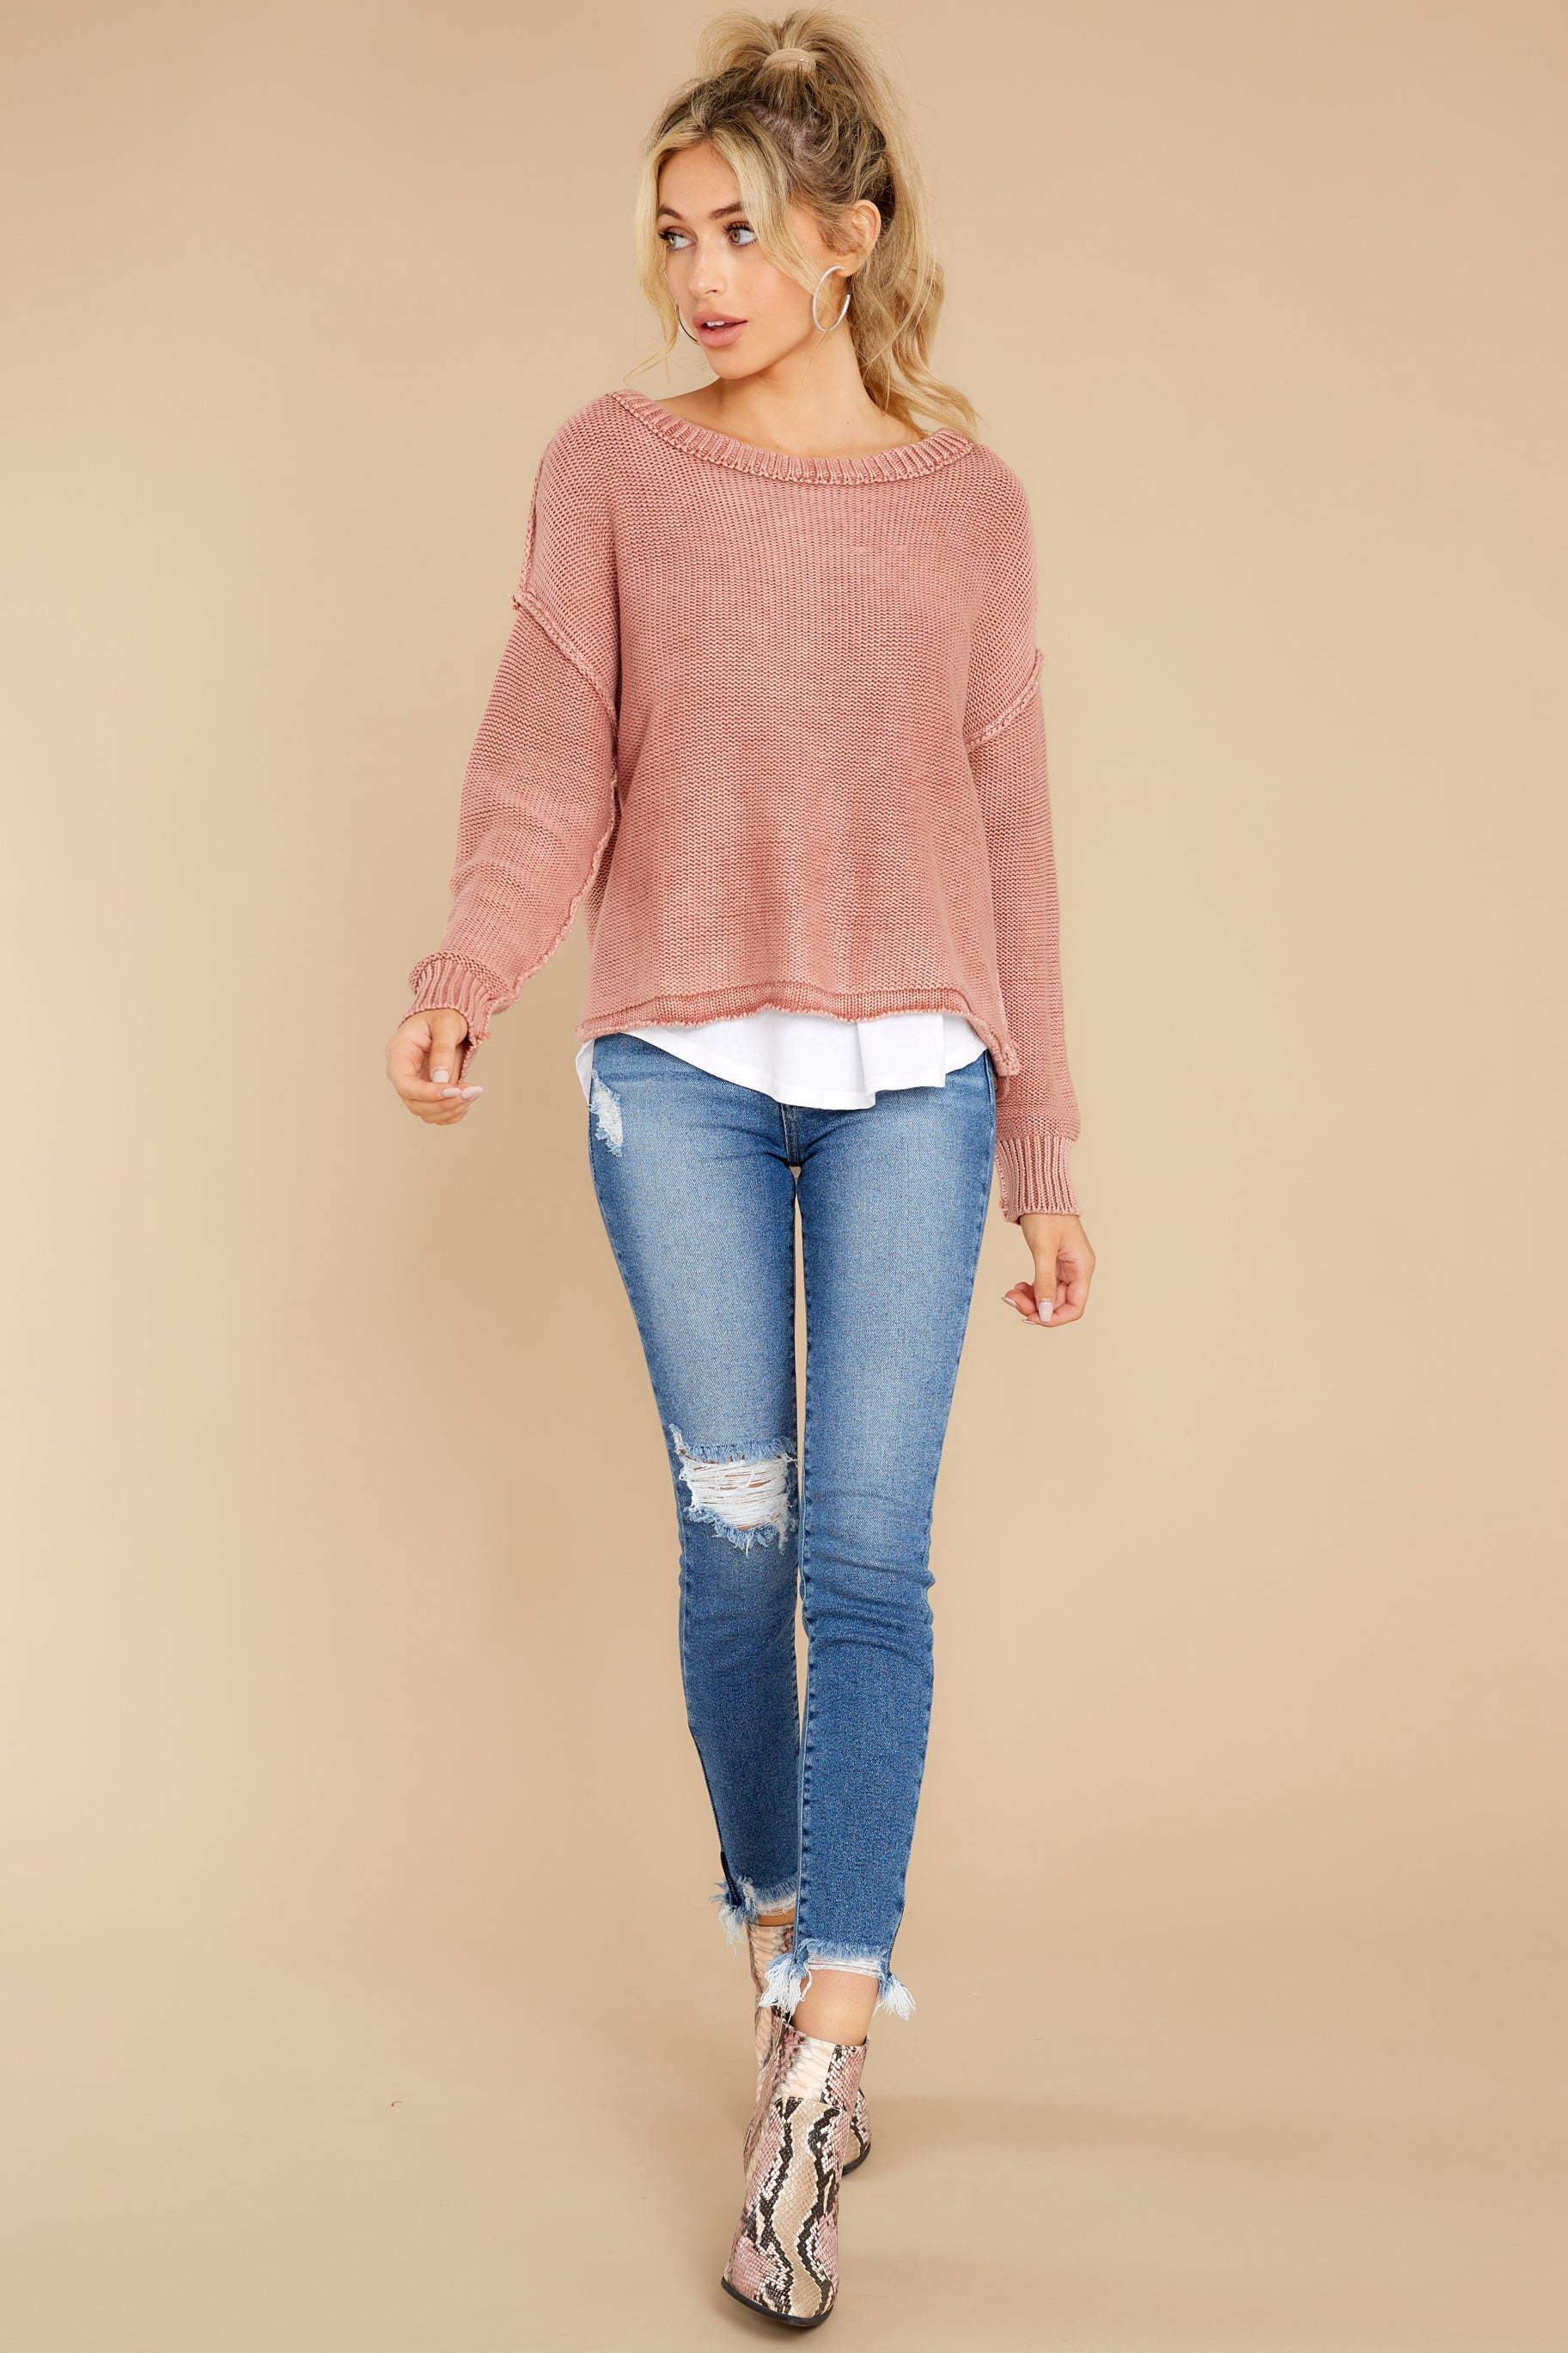 3 All Your Love Dusty Rose Sweater at reddress.com